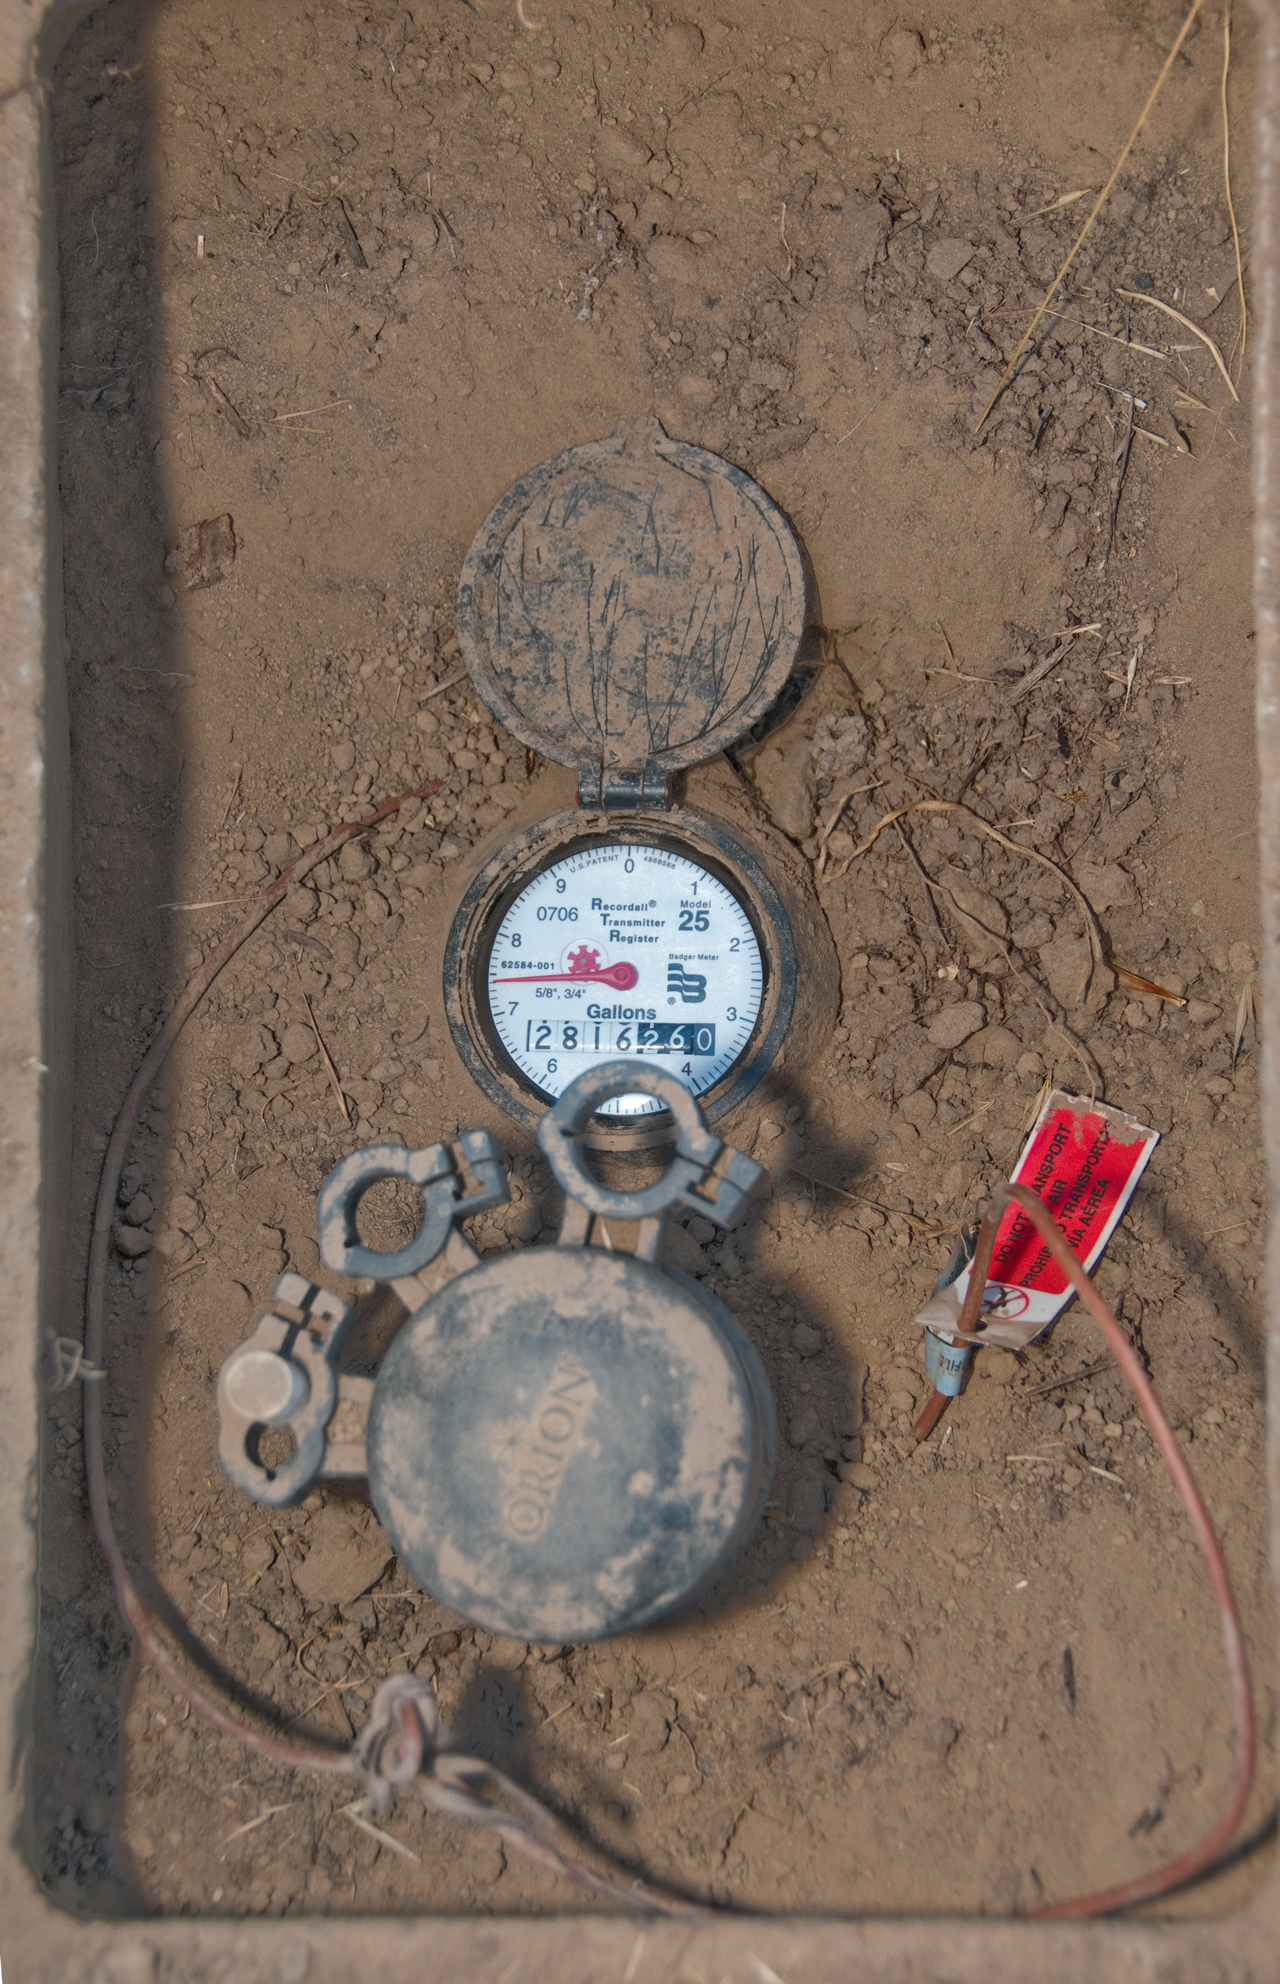 Smart Utility Meters on home water meter installation diagrams, acme transformers electrical connection diagrams, meter service diagrams, meter socket wiring, meter socket diagram, house electrical meter diagrams, 12s meter diagrams, meter form diagrams,